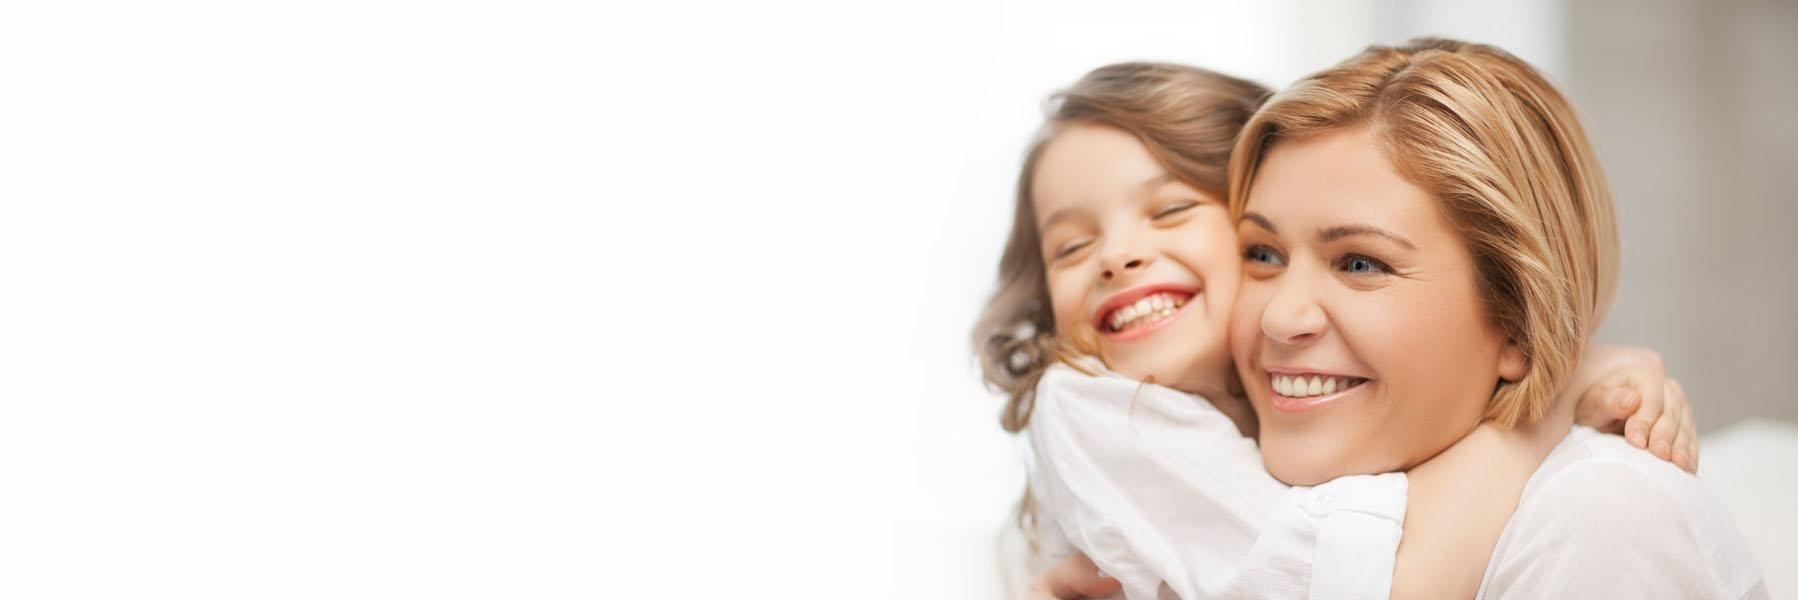 Gentle Children's Dentistry in Van Nuys, CA banner image